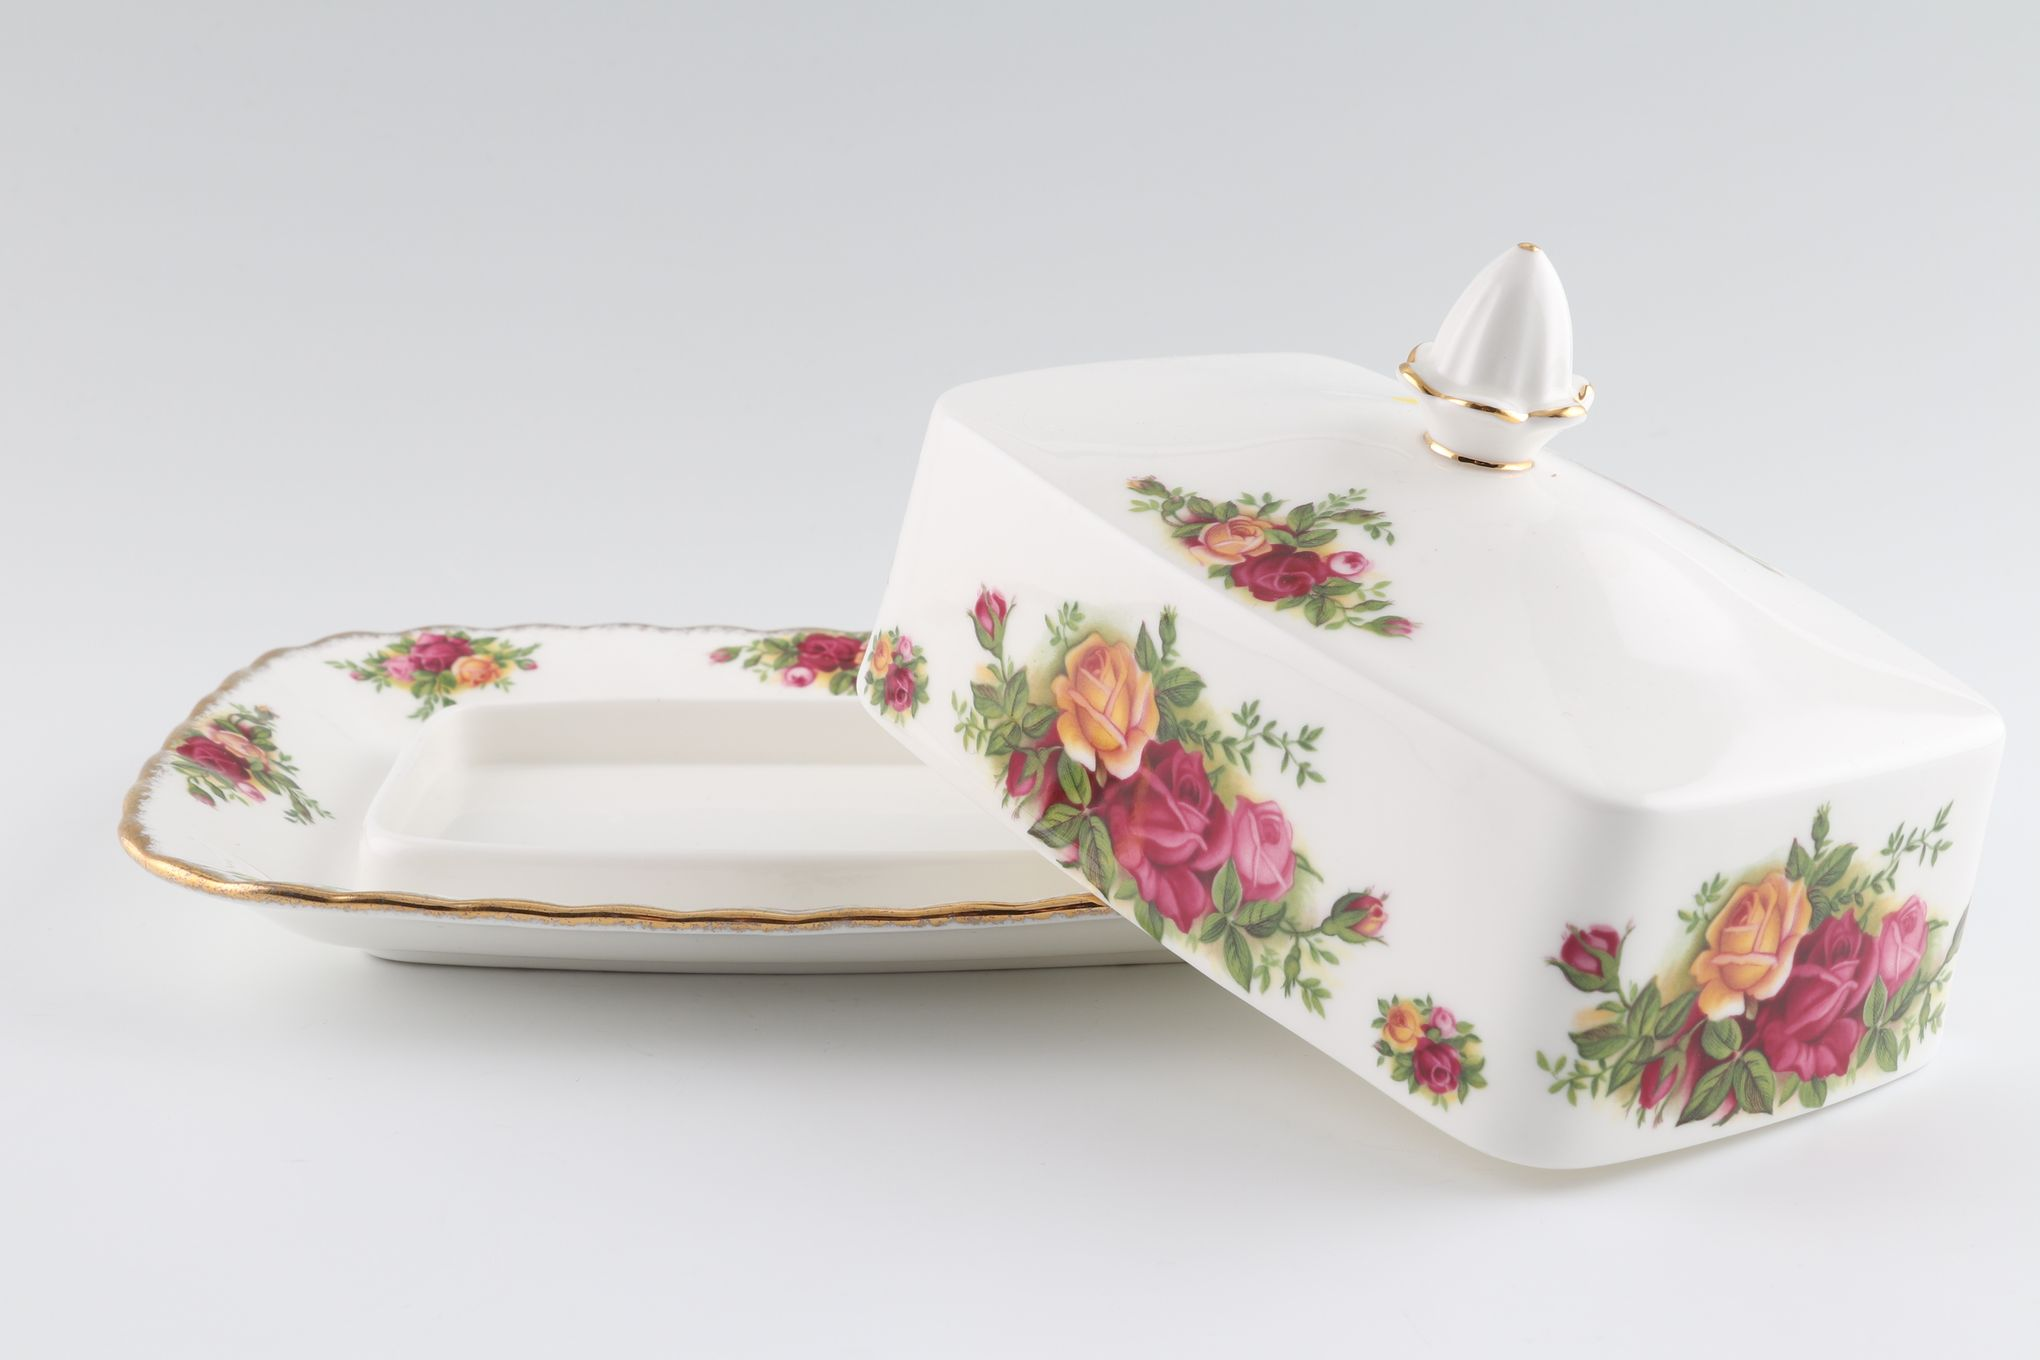 """Royal Albert Old Country Roses - Made in England Butter Dish + Lid 7 1/2 x 6"""" thumb 1"""